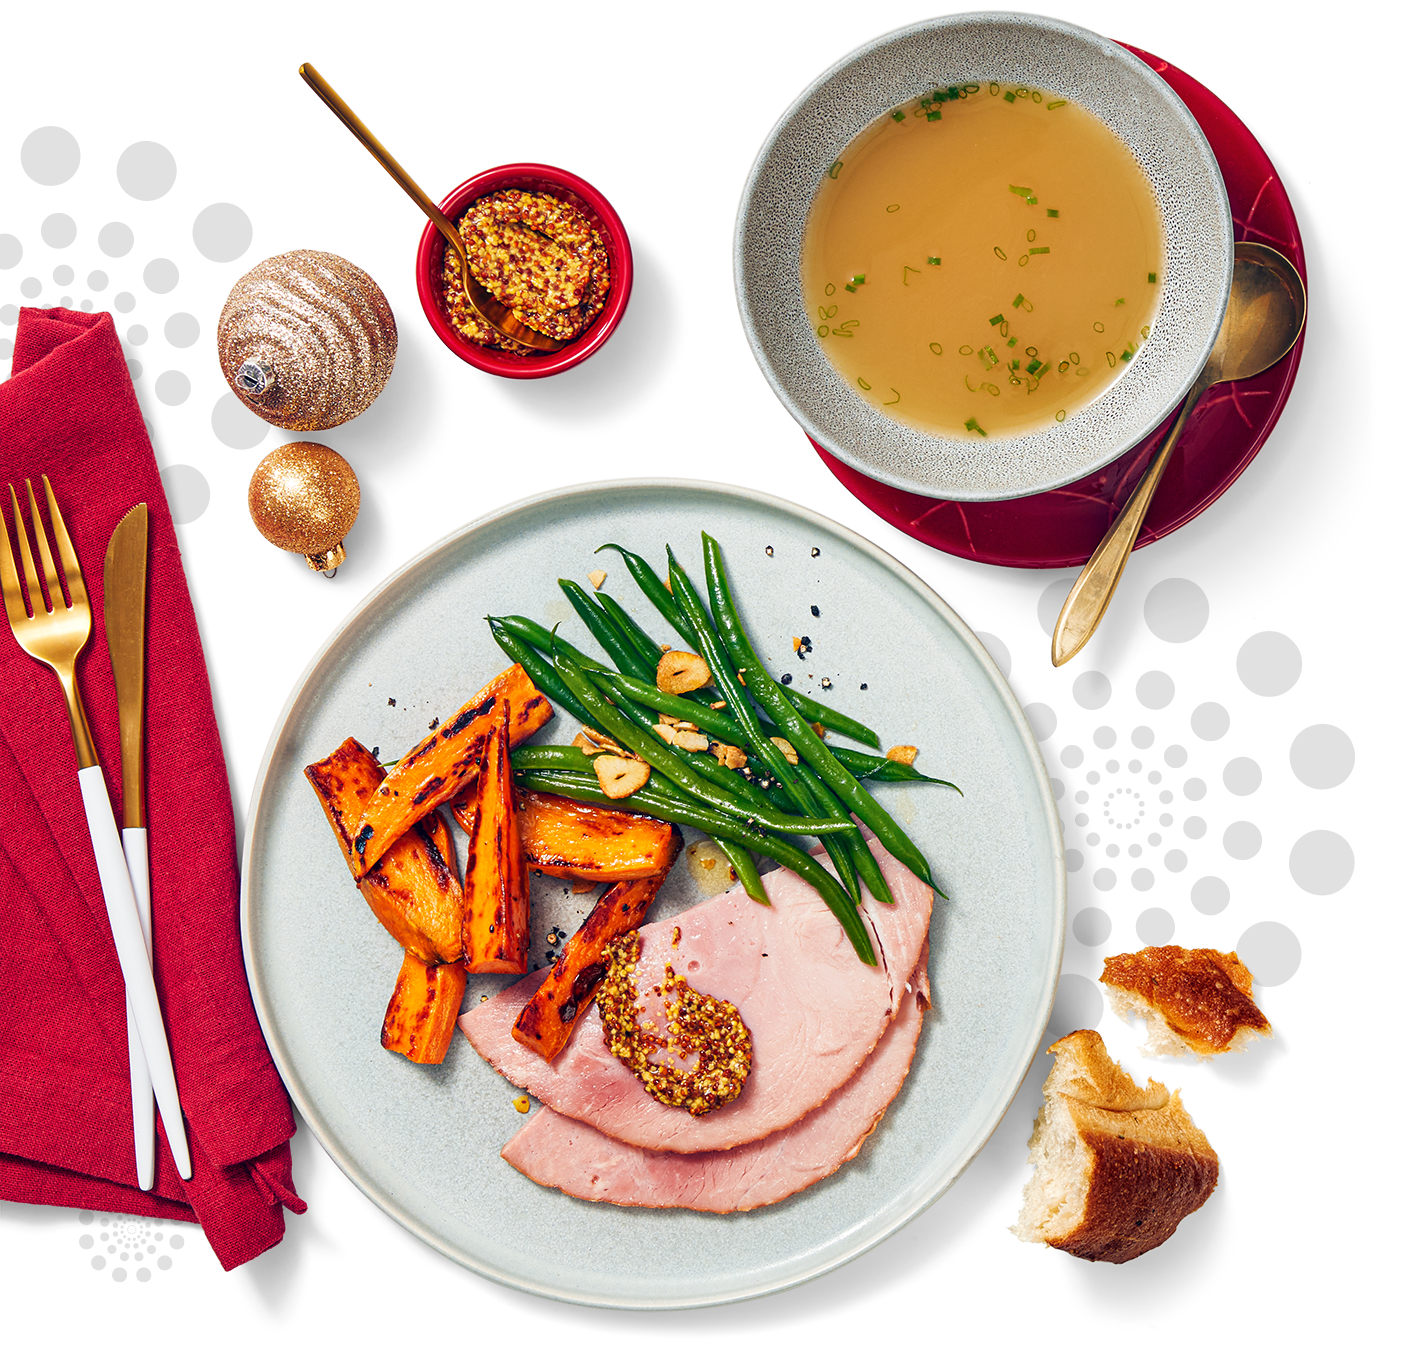 A charging plate with a healthy holiday serving of ham string beans and candied yam slices alongside is a bowl of soup and decorated with a few Christmas ornaments